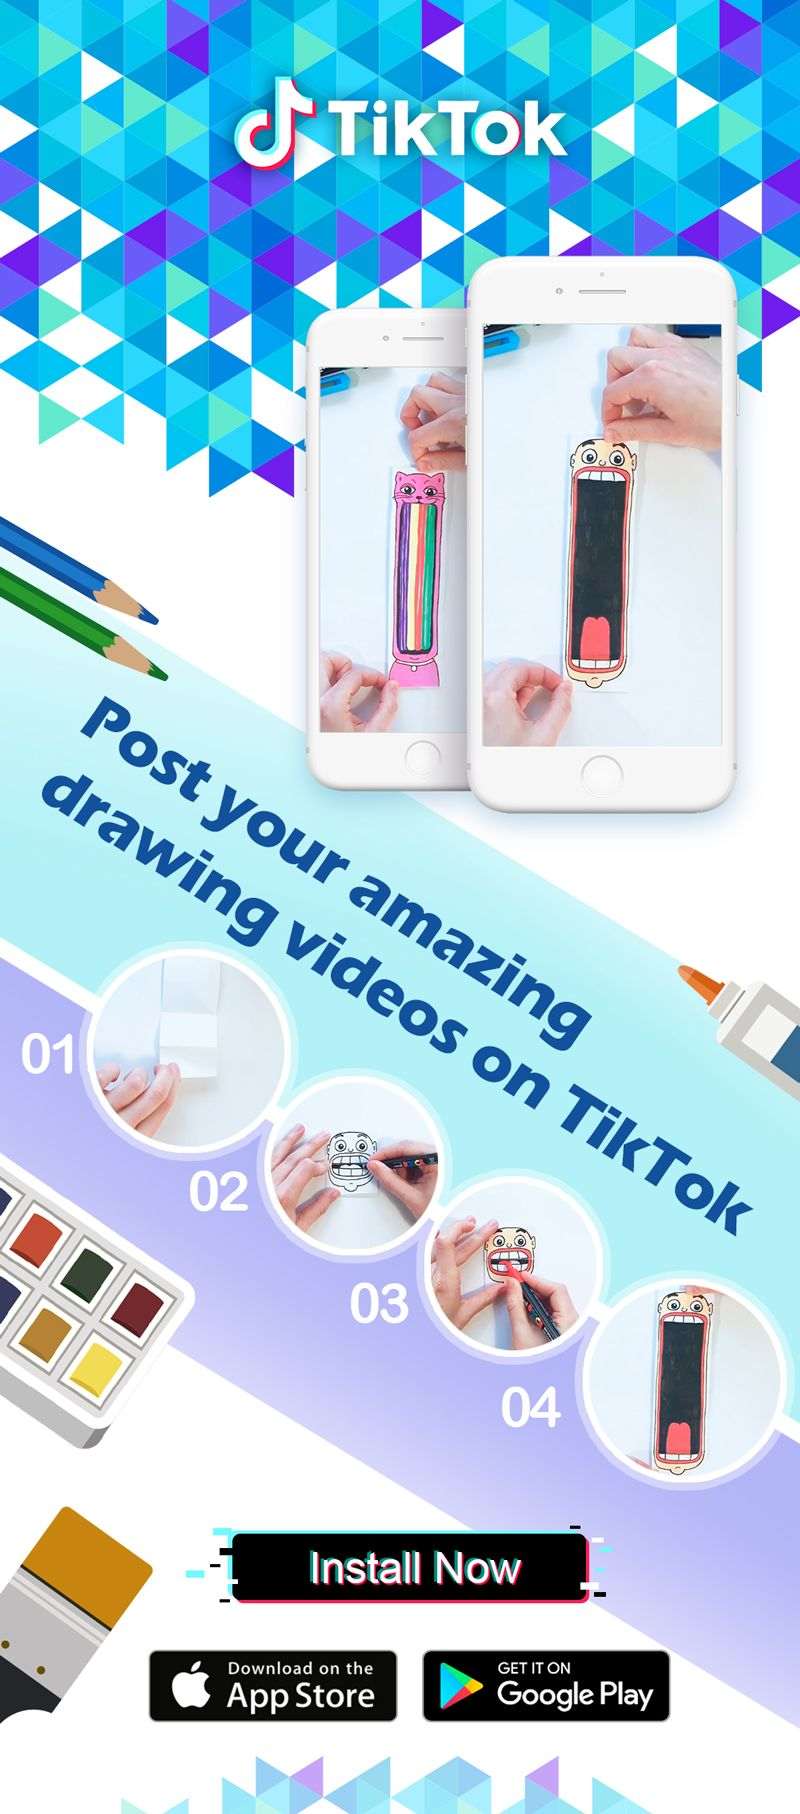 Download tiktok musically to watch awesome diy videos